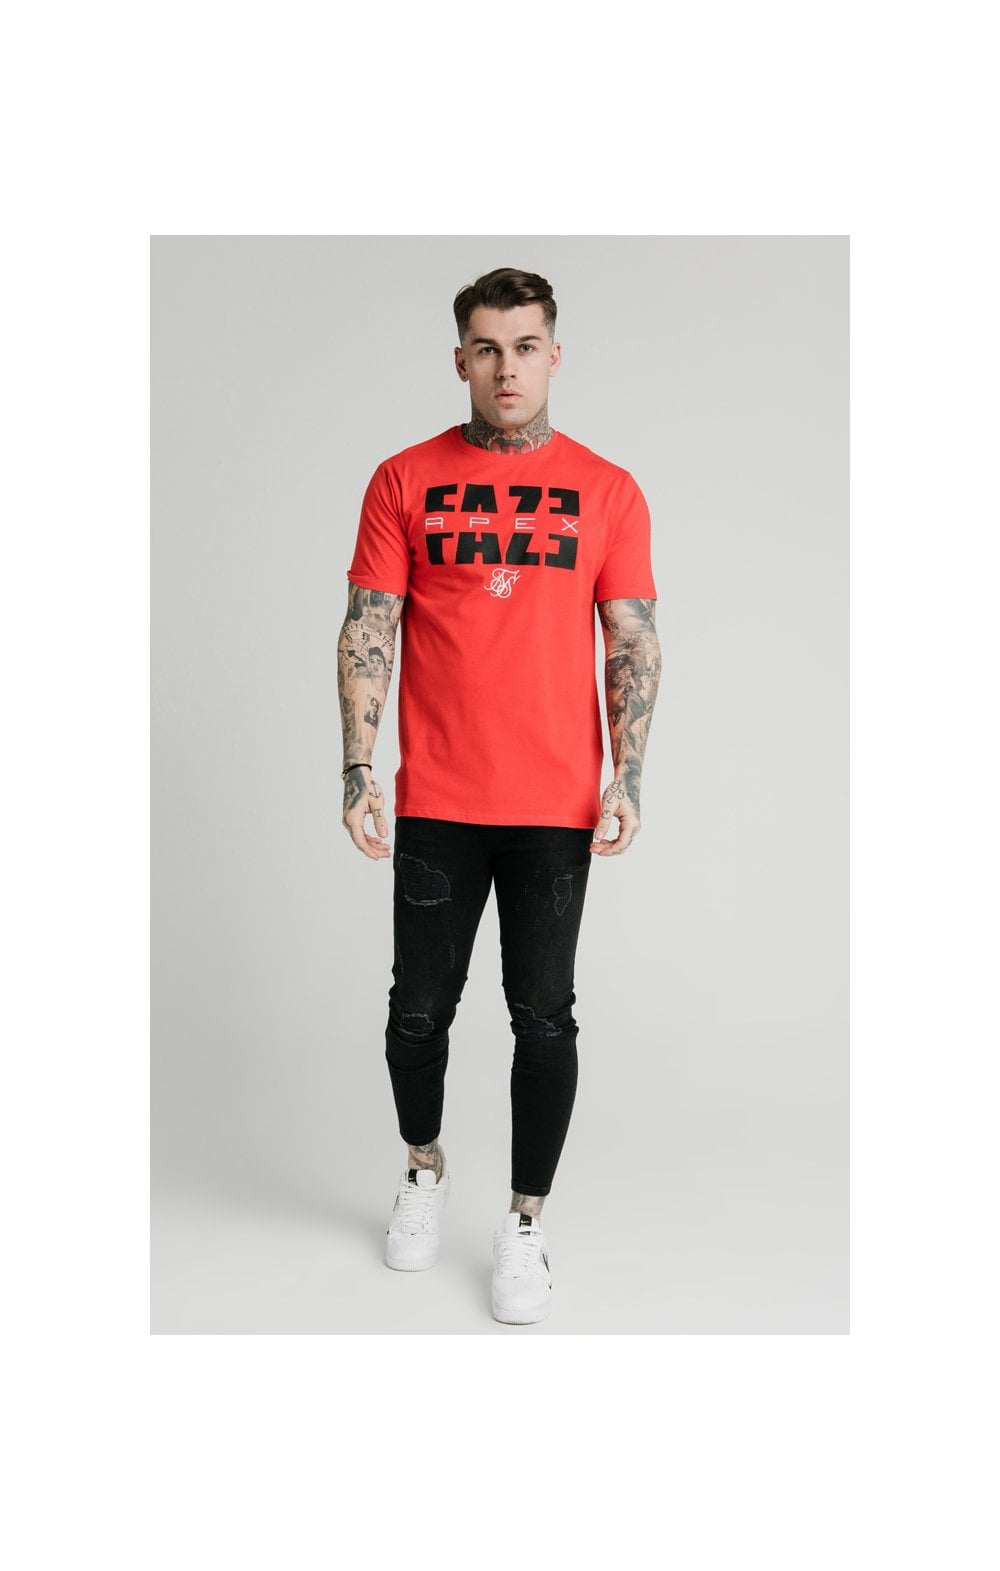 SikSilk x FaZe Apex Standard Square Hem Tee - Red (4)